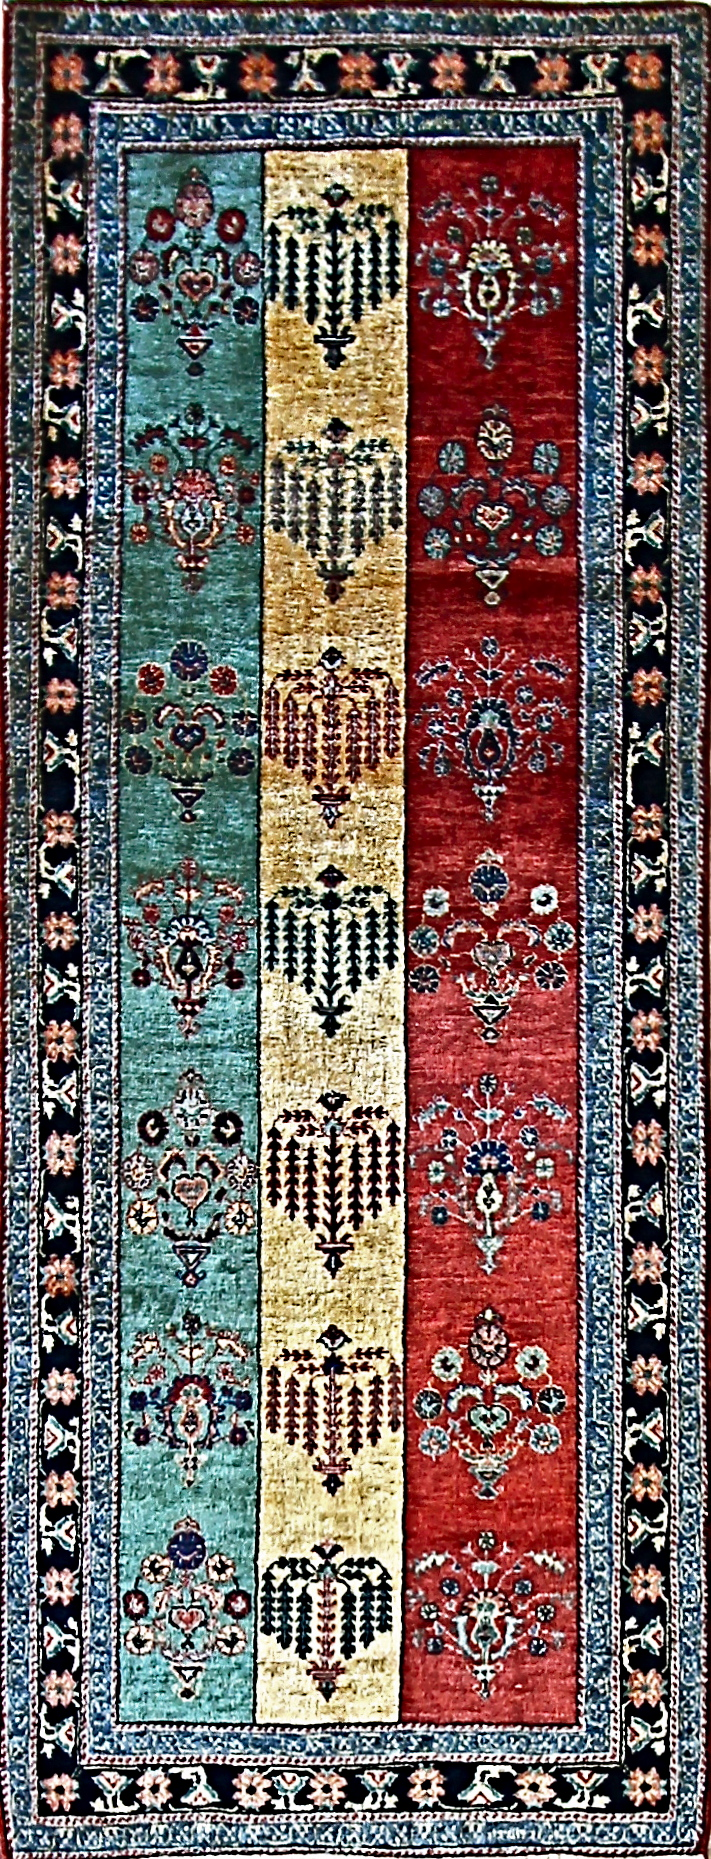 609 Luri Bakhtiari, woven by Nomads in S.W. Persia, 2'9'' x 7'2''